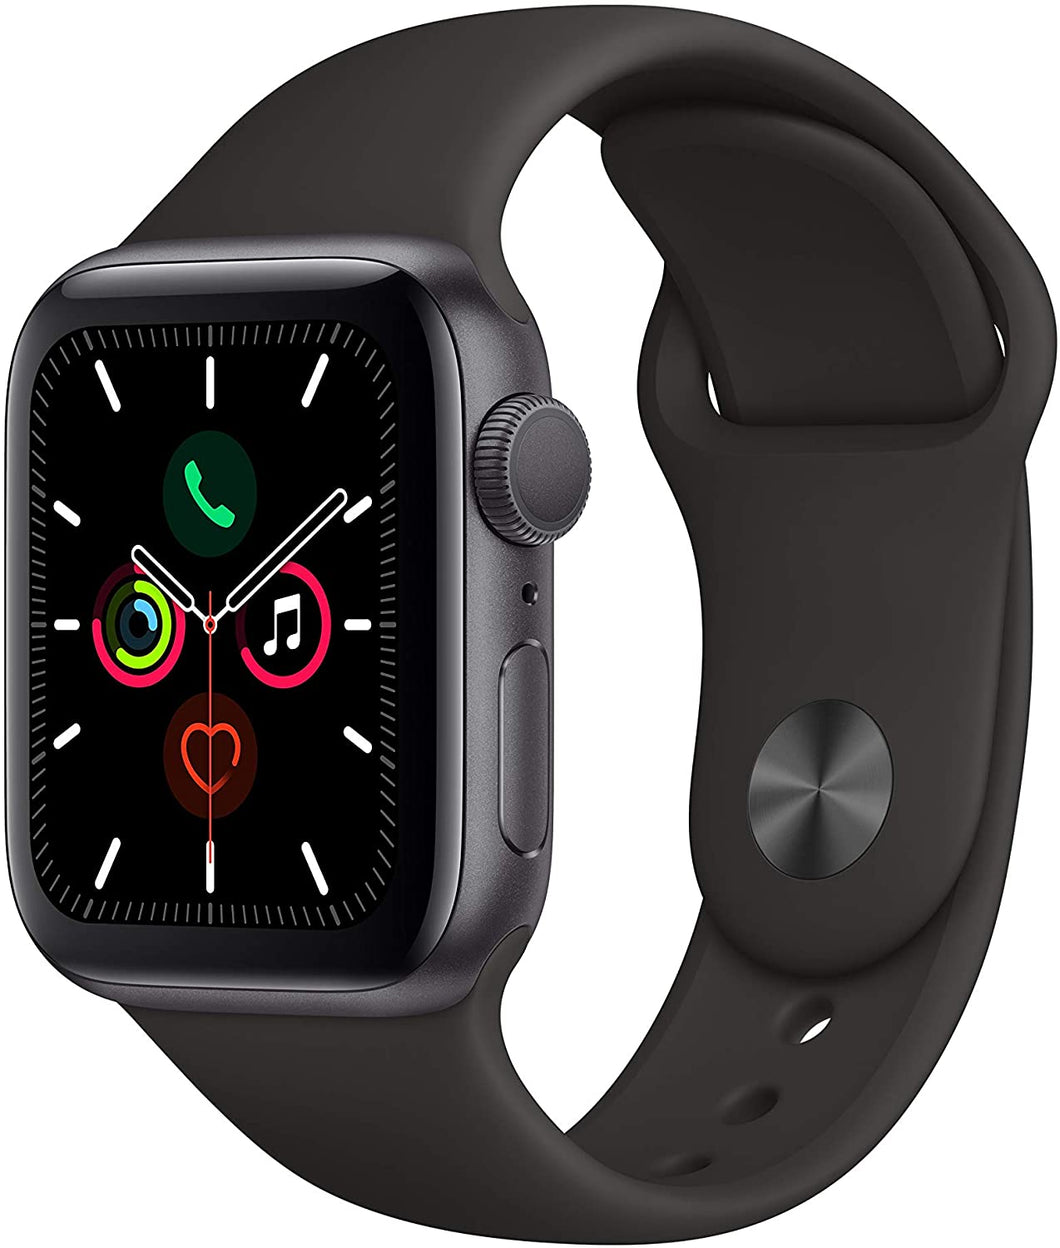 Apple Watch Series 5 (GPS, 40mm) - Space Gray Aluminum Case with Black Sport Band - Atlas Computers & Electronics